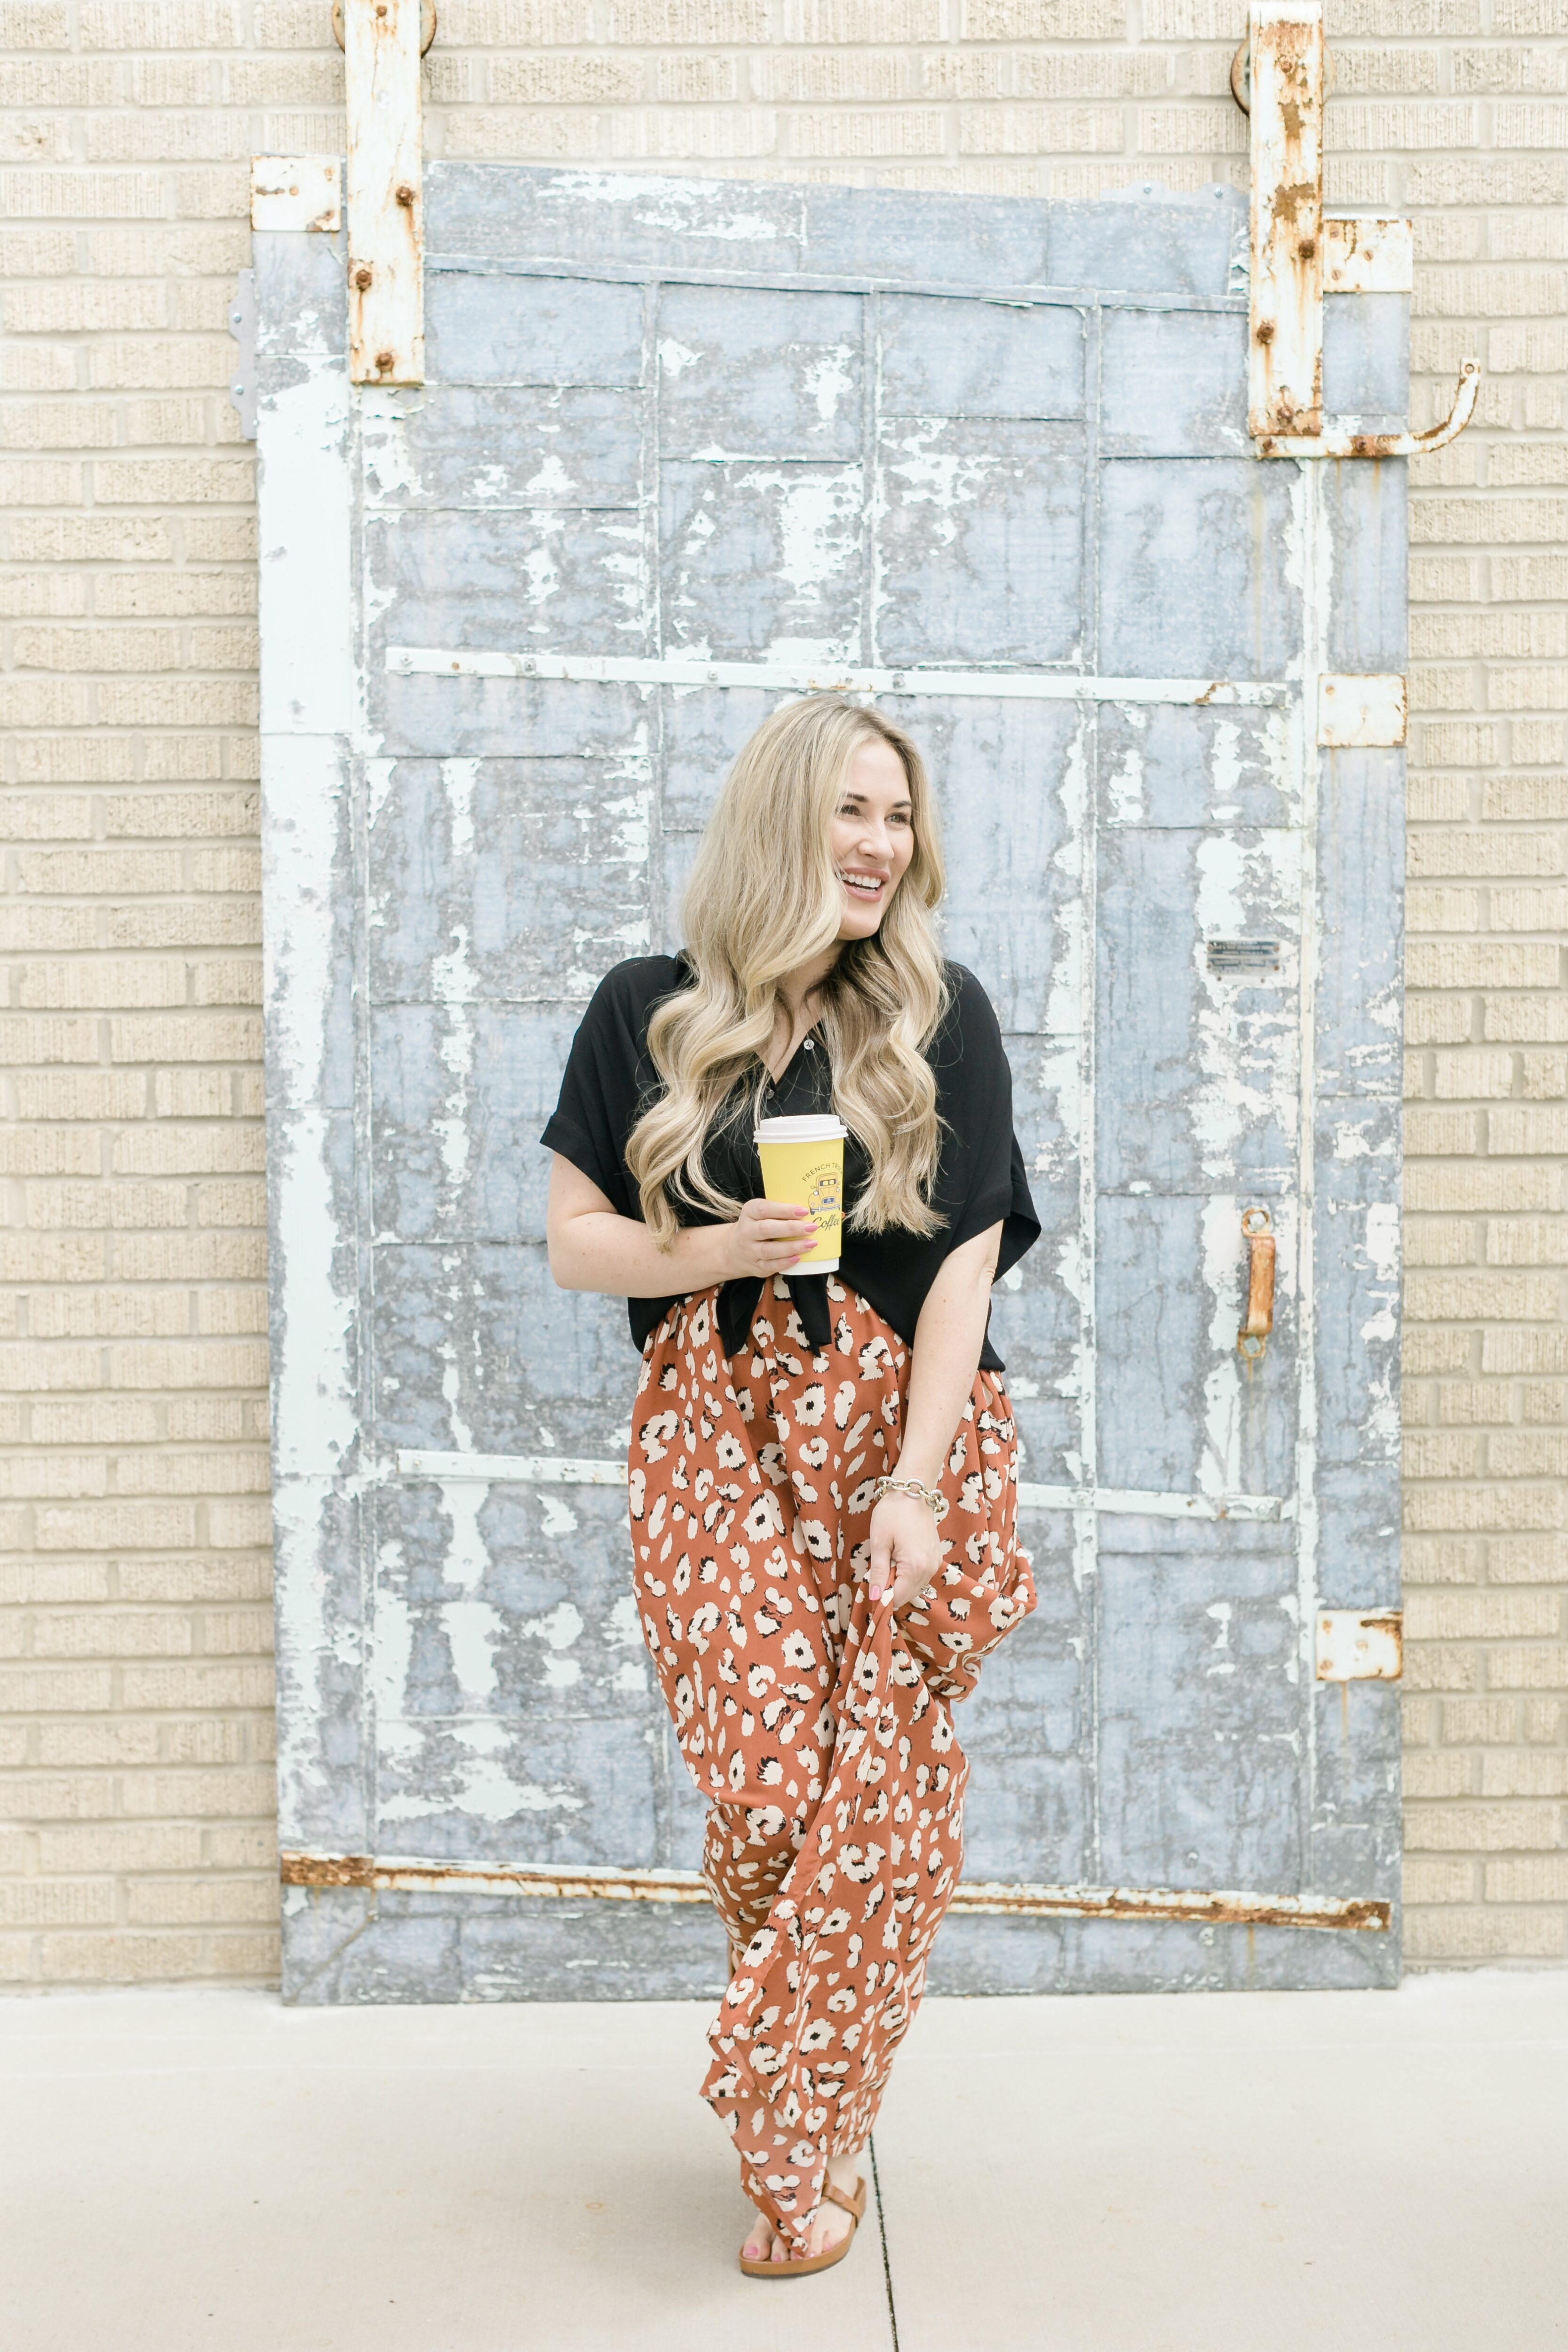 Pinkblush Animal print maxi dress styled for summer by top Memphis fashion blogger, Walking in Memphis in High Heels.